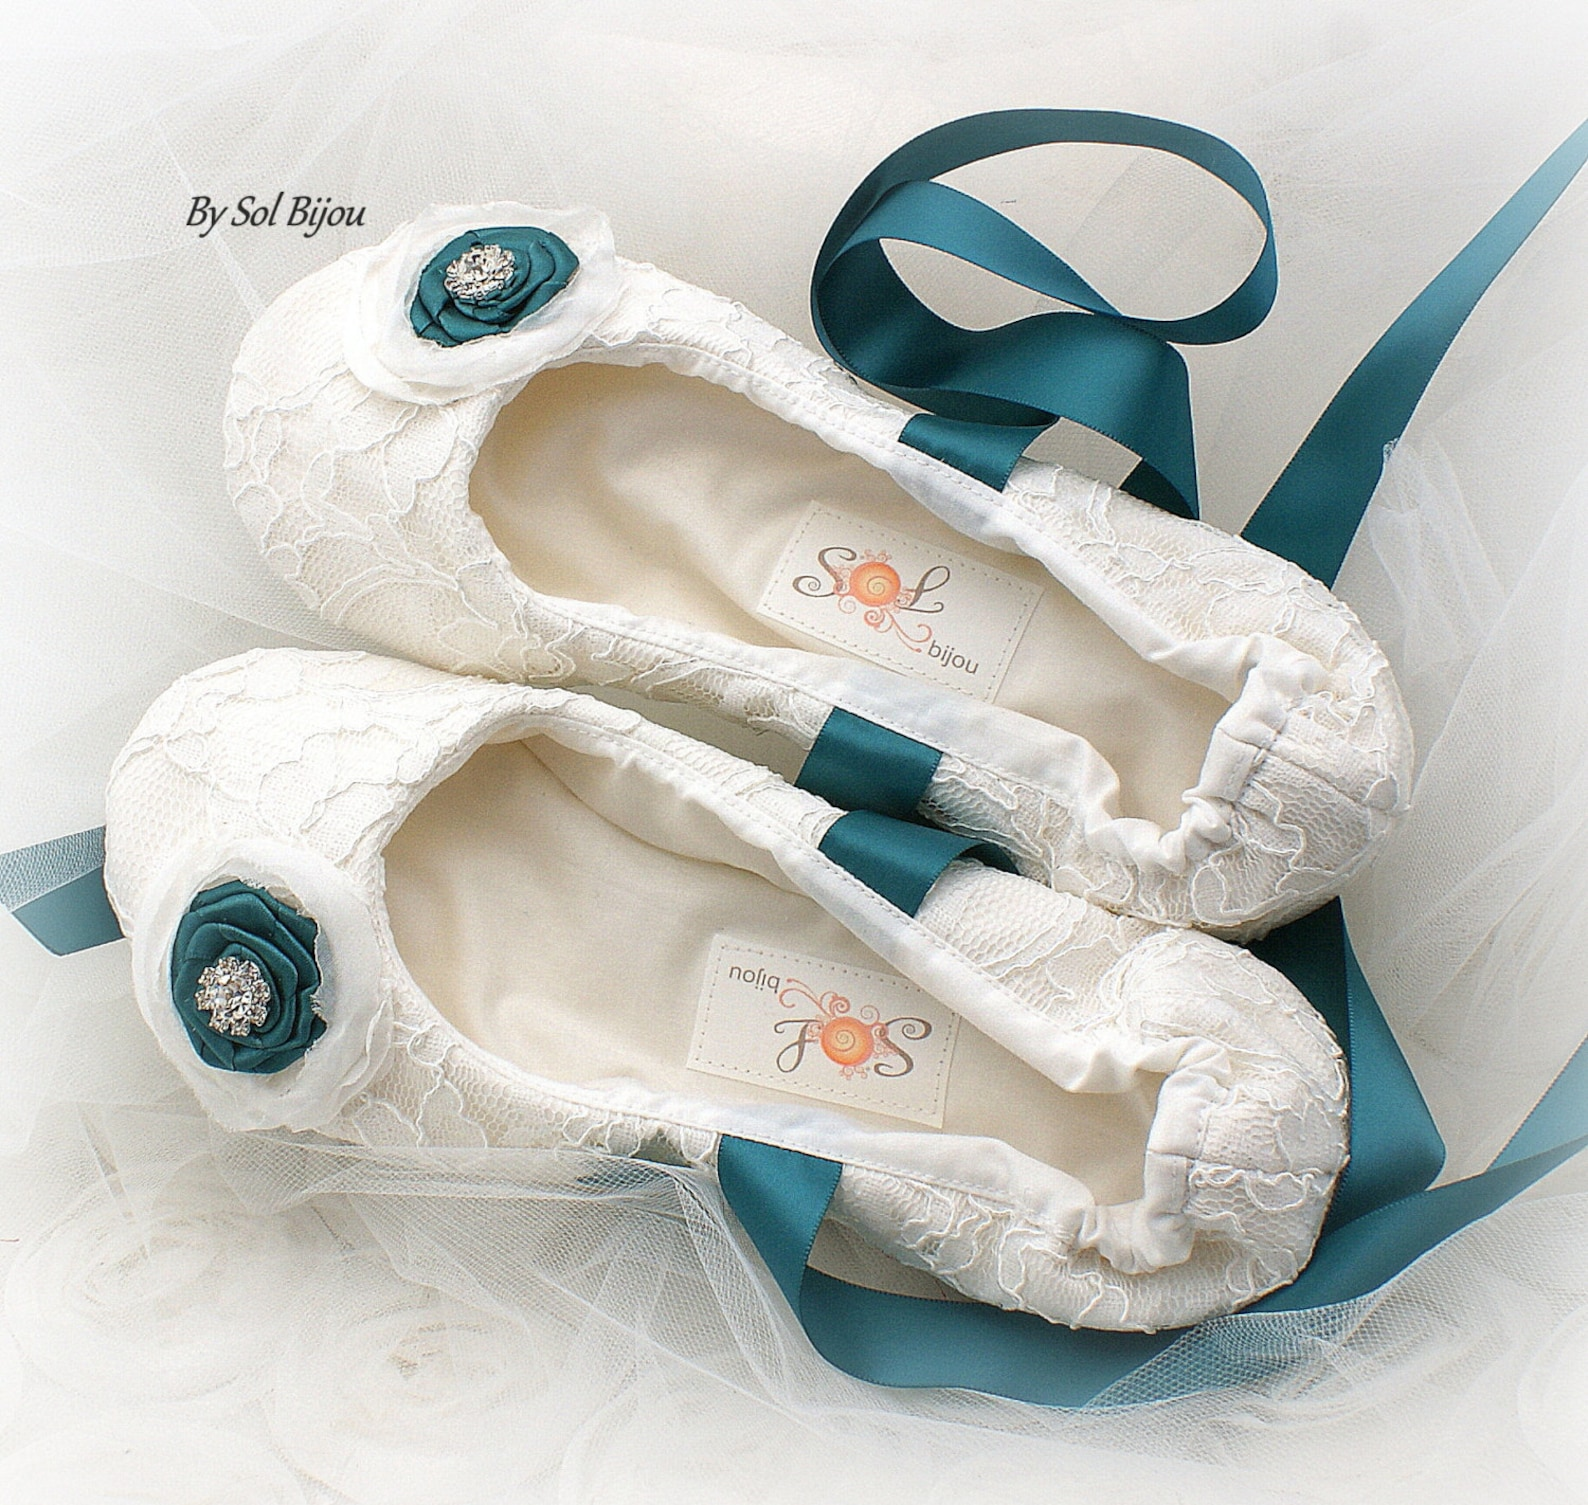 teal and white wedding flats, white lace ballet flats with teal flowers and ankle ties